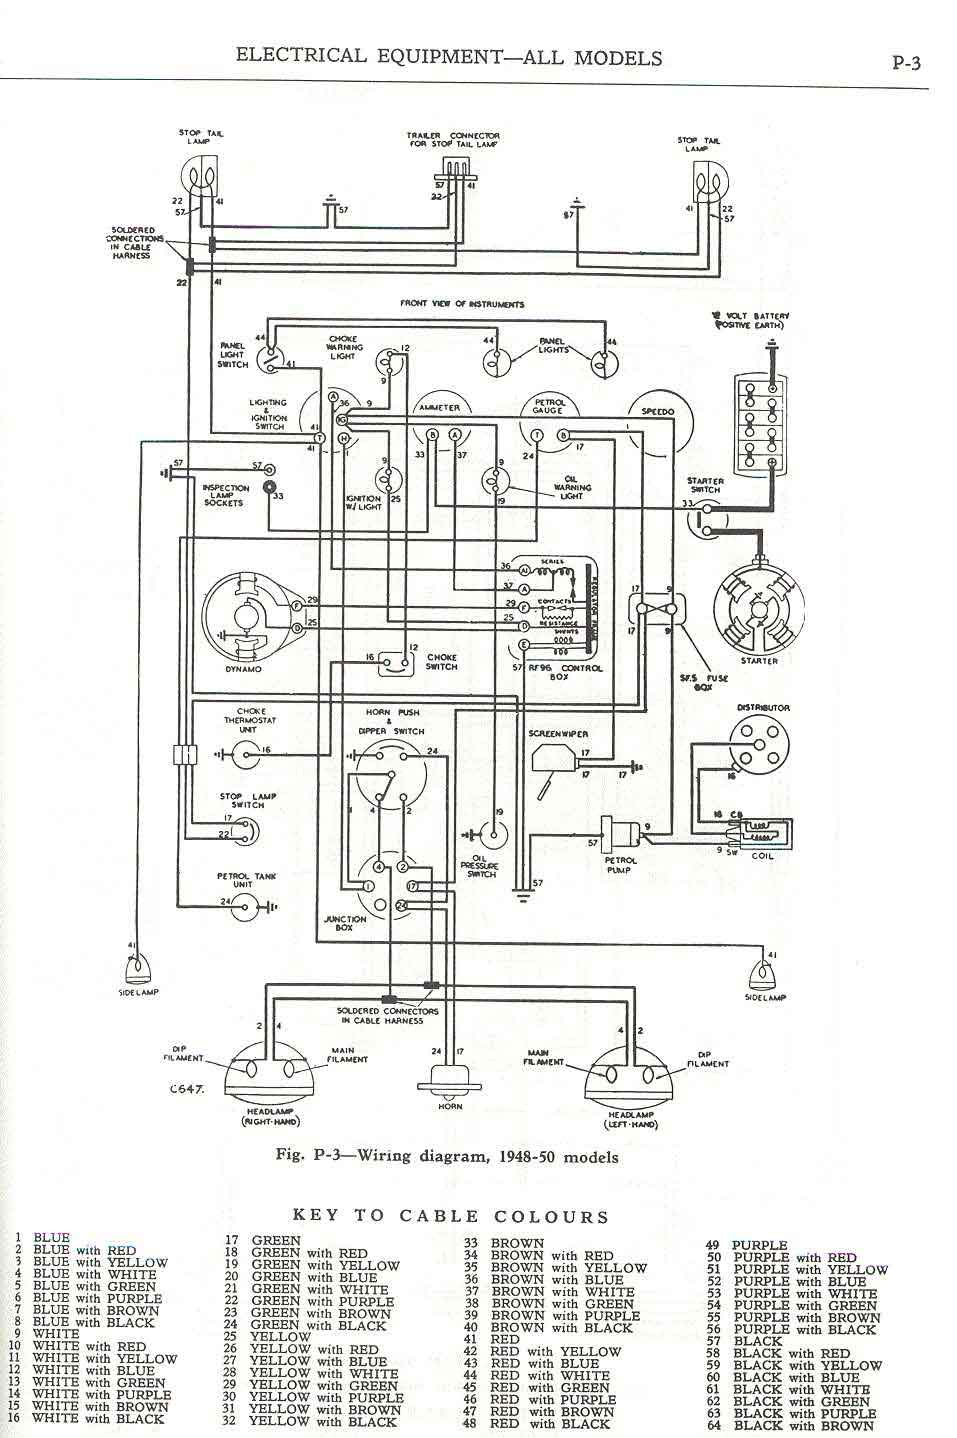 P3 land rover faq repair & maintenance series electrical rover 45 wiring diagram at virtualis.co